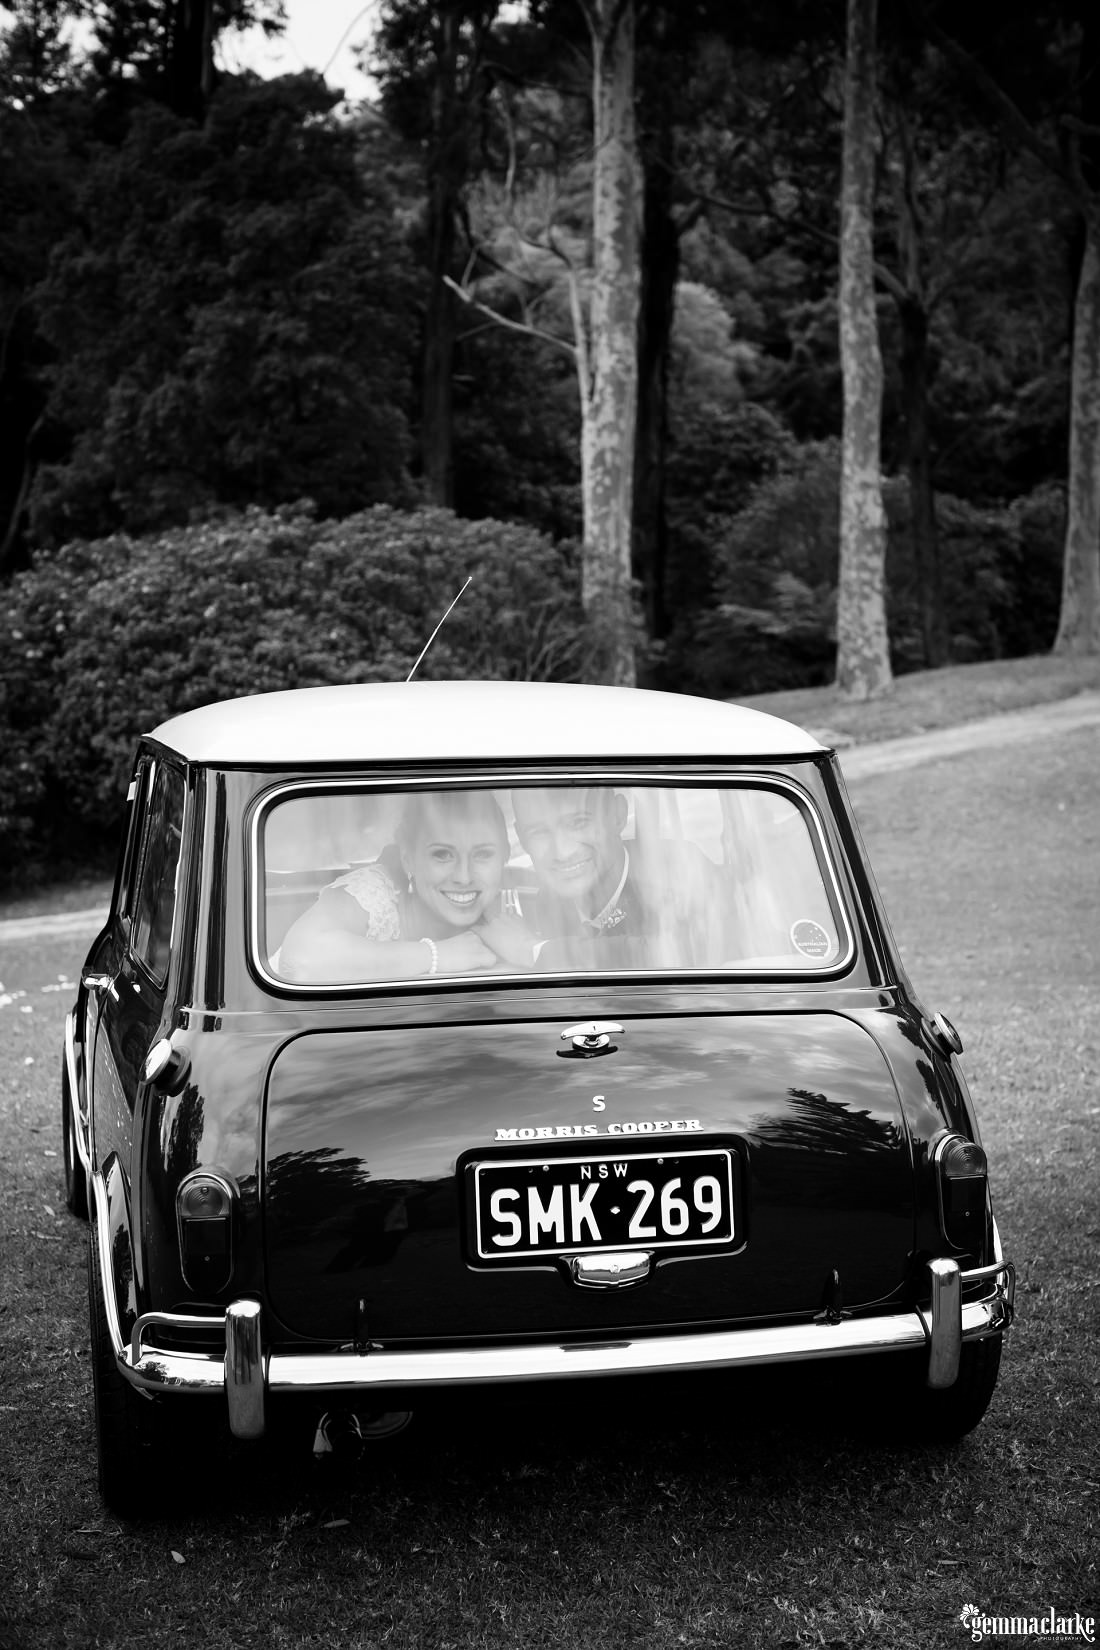 A smiling bride and groom look out from the back of a classic Mini